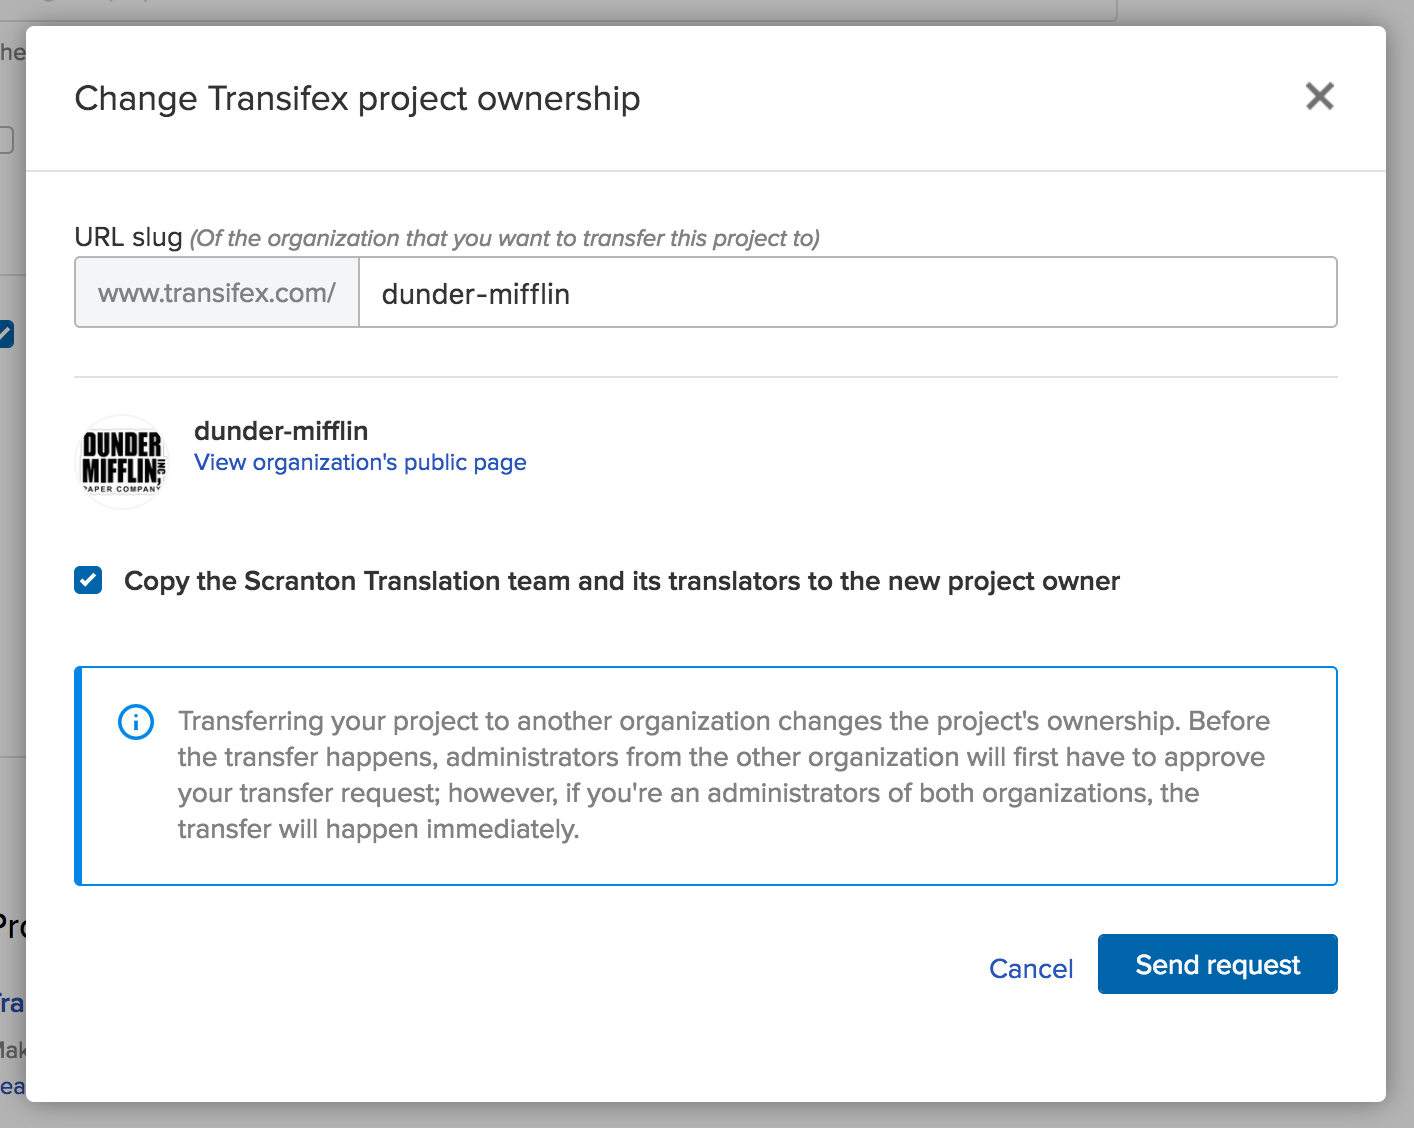 transferring a project to another transifex documentation project ownership png asset 300